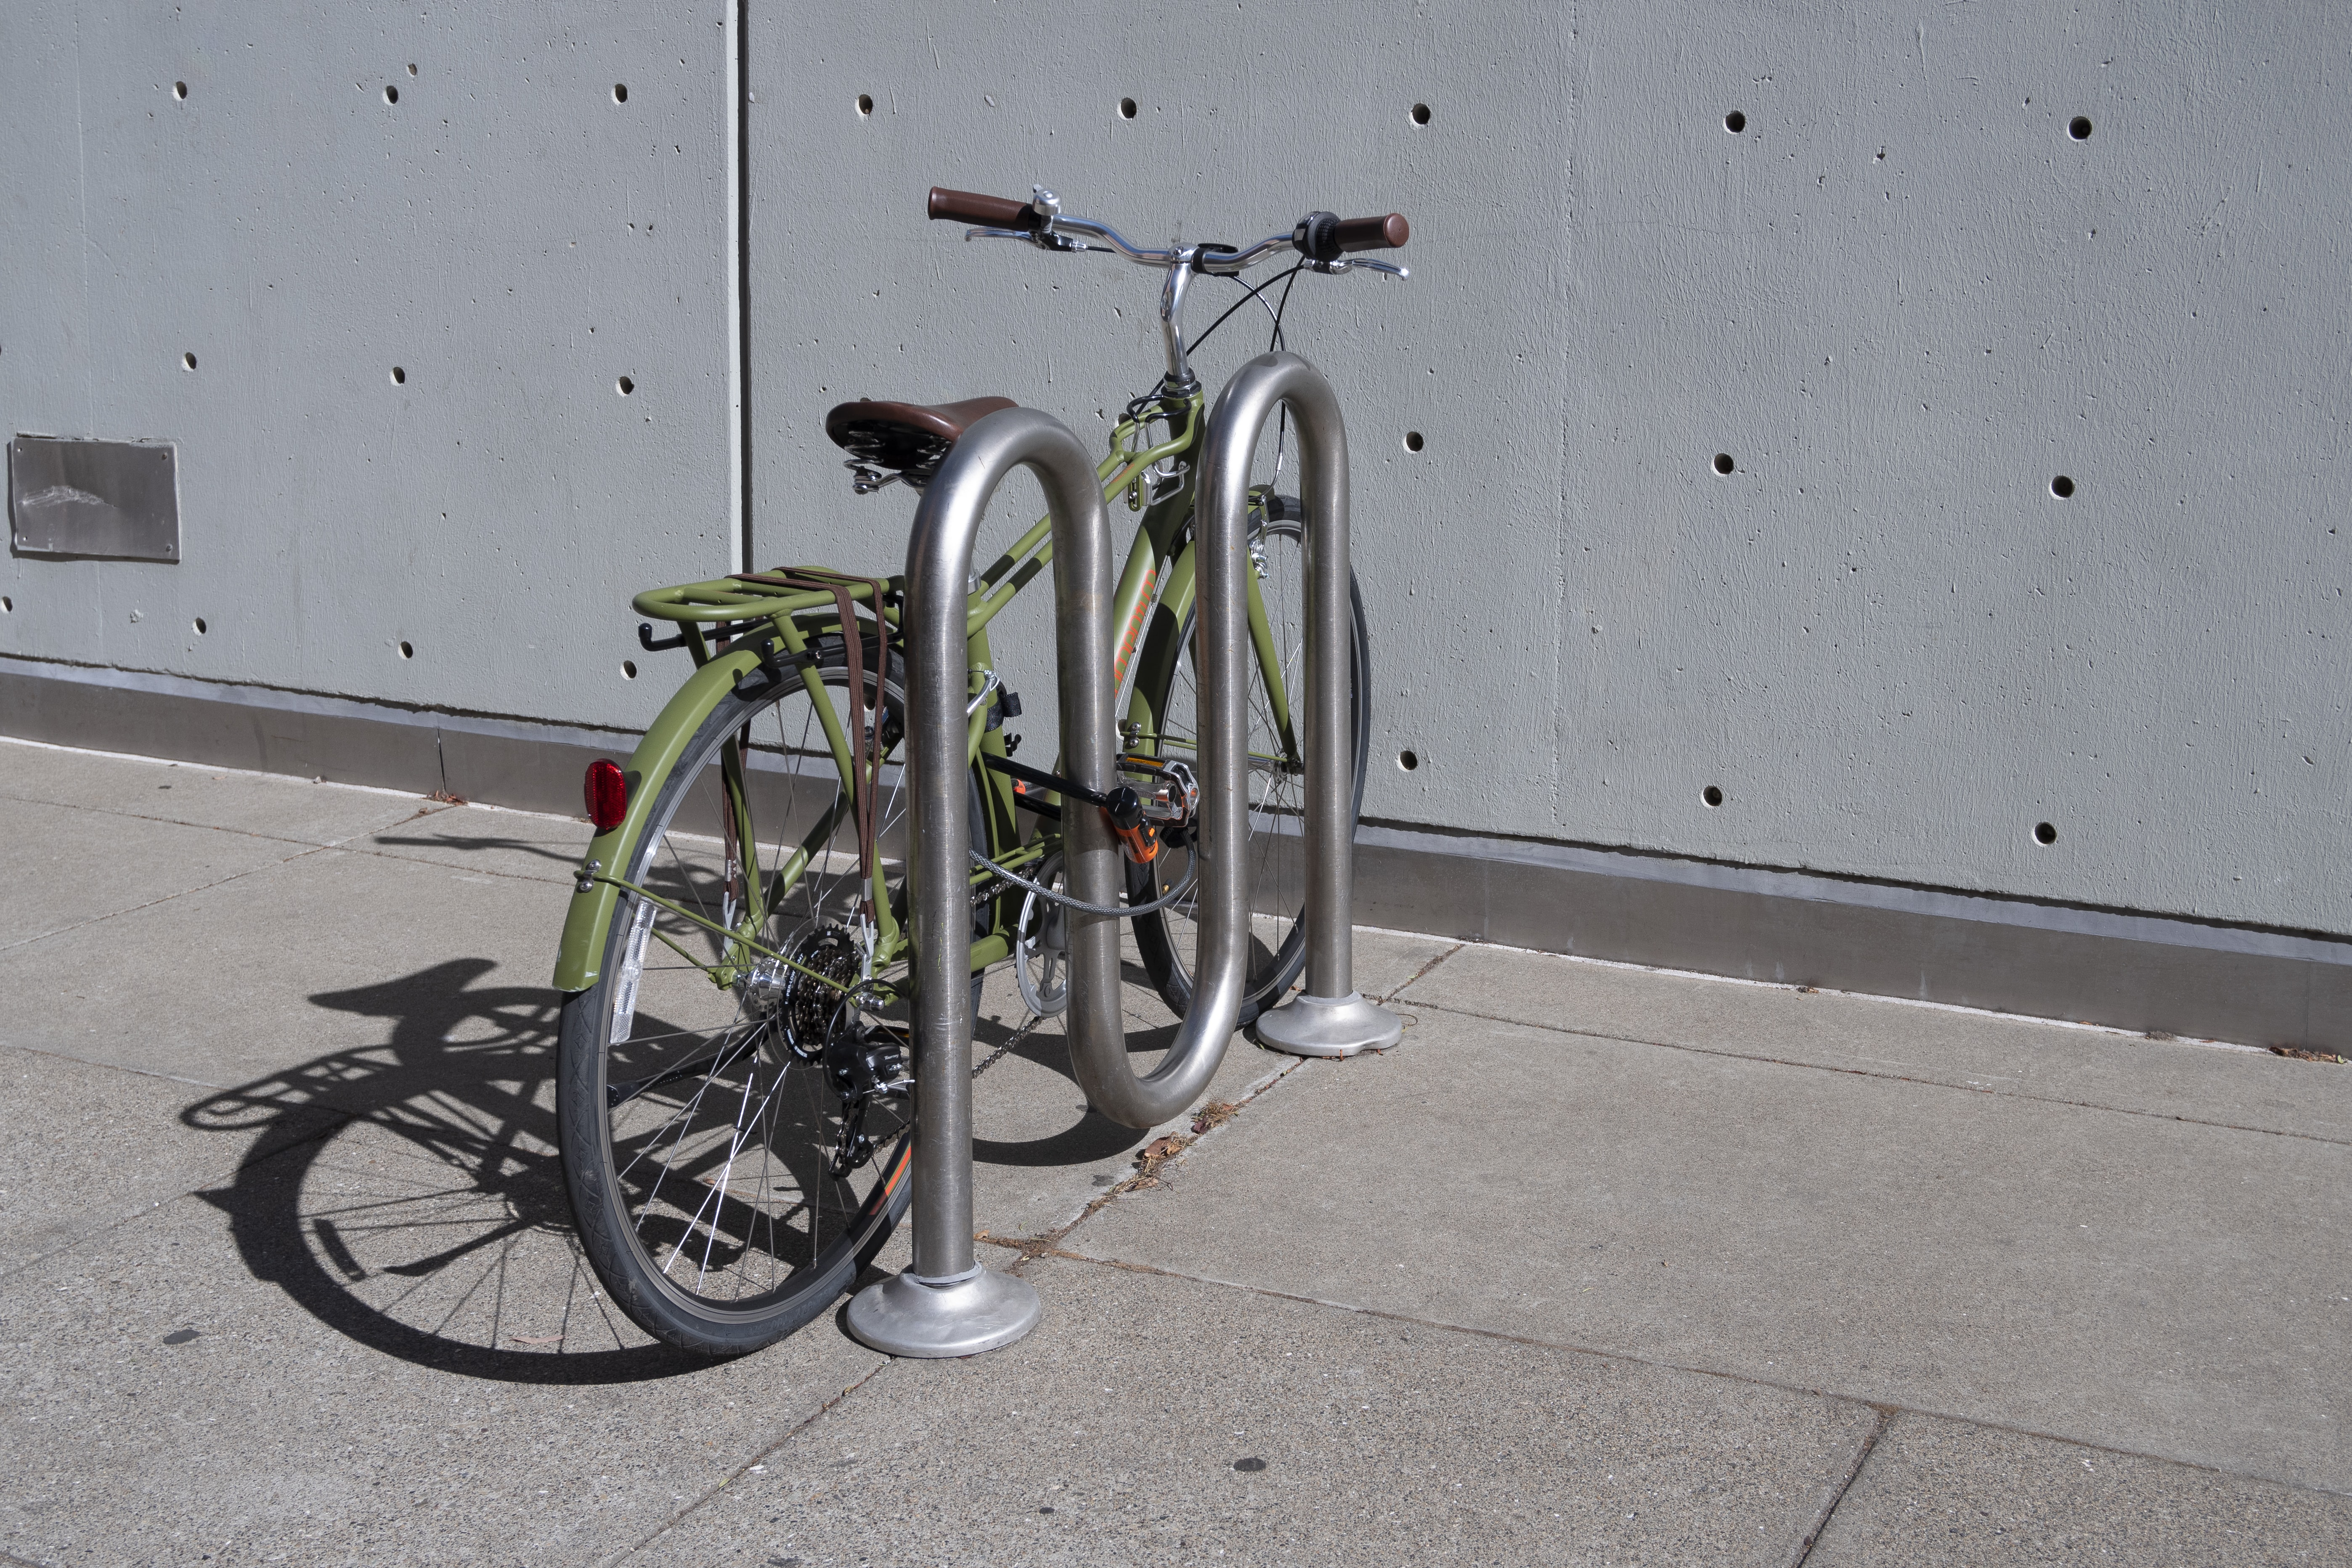 green city bicycle parked near wall during daytime